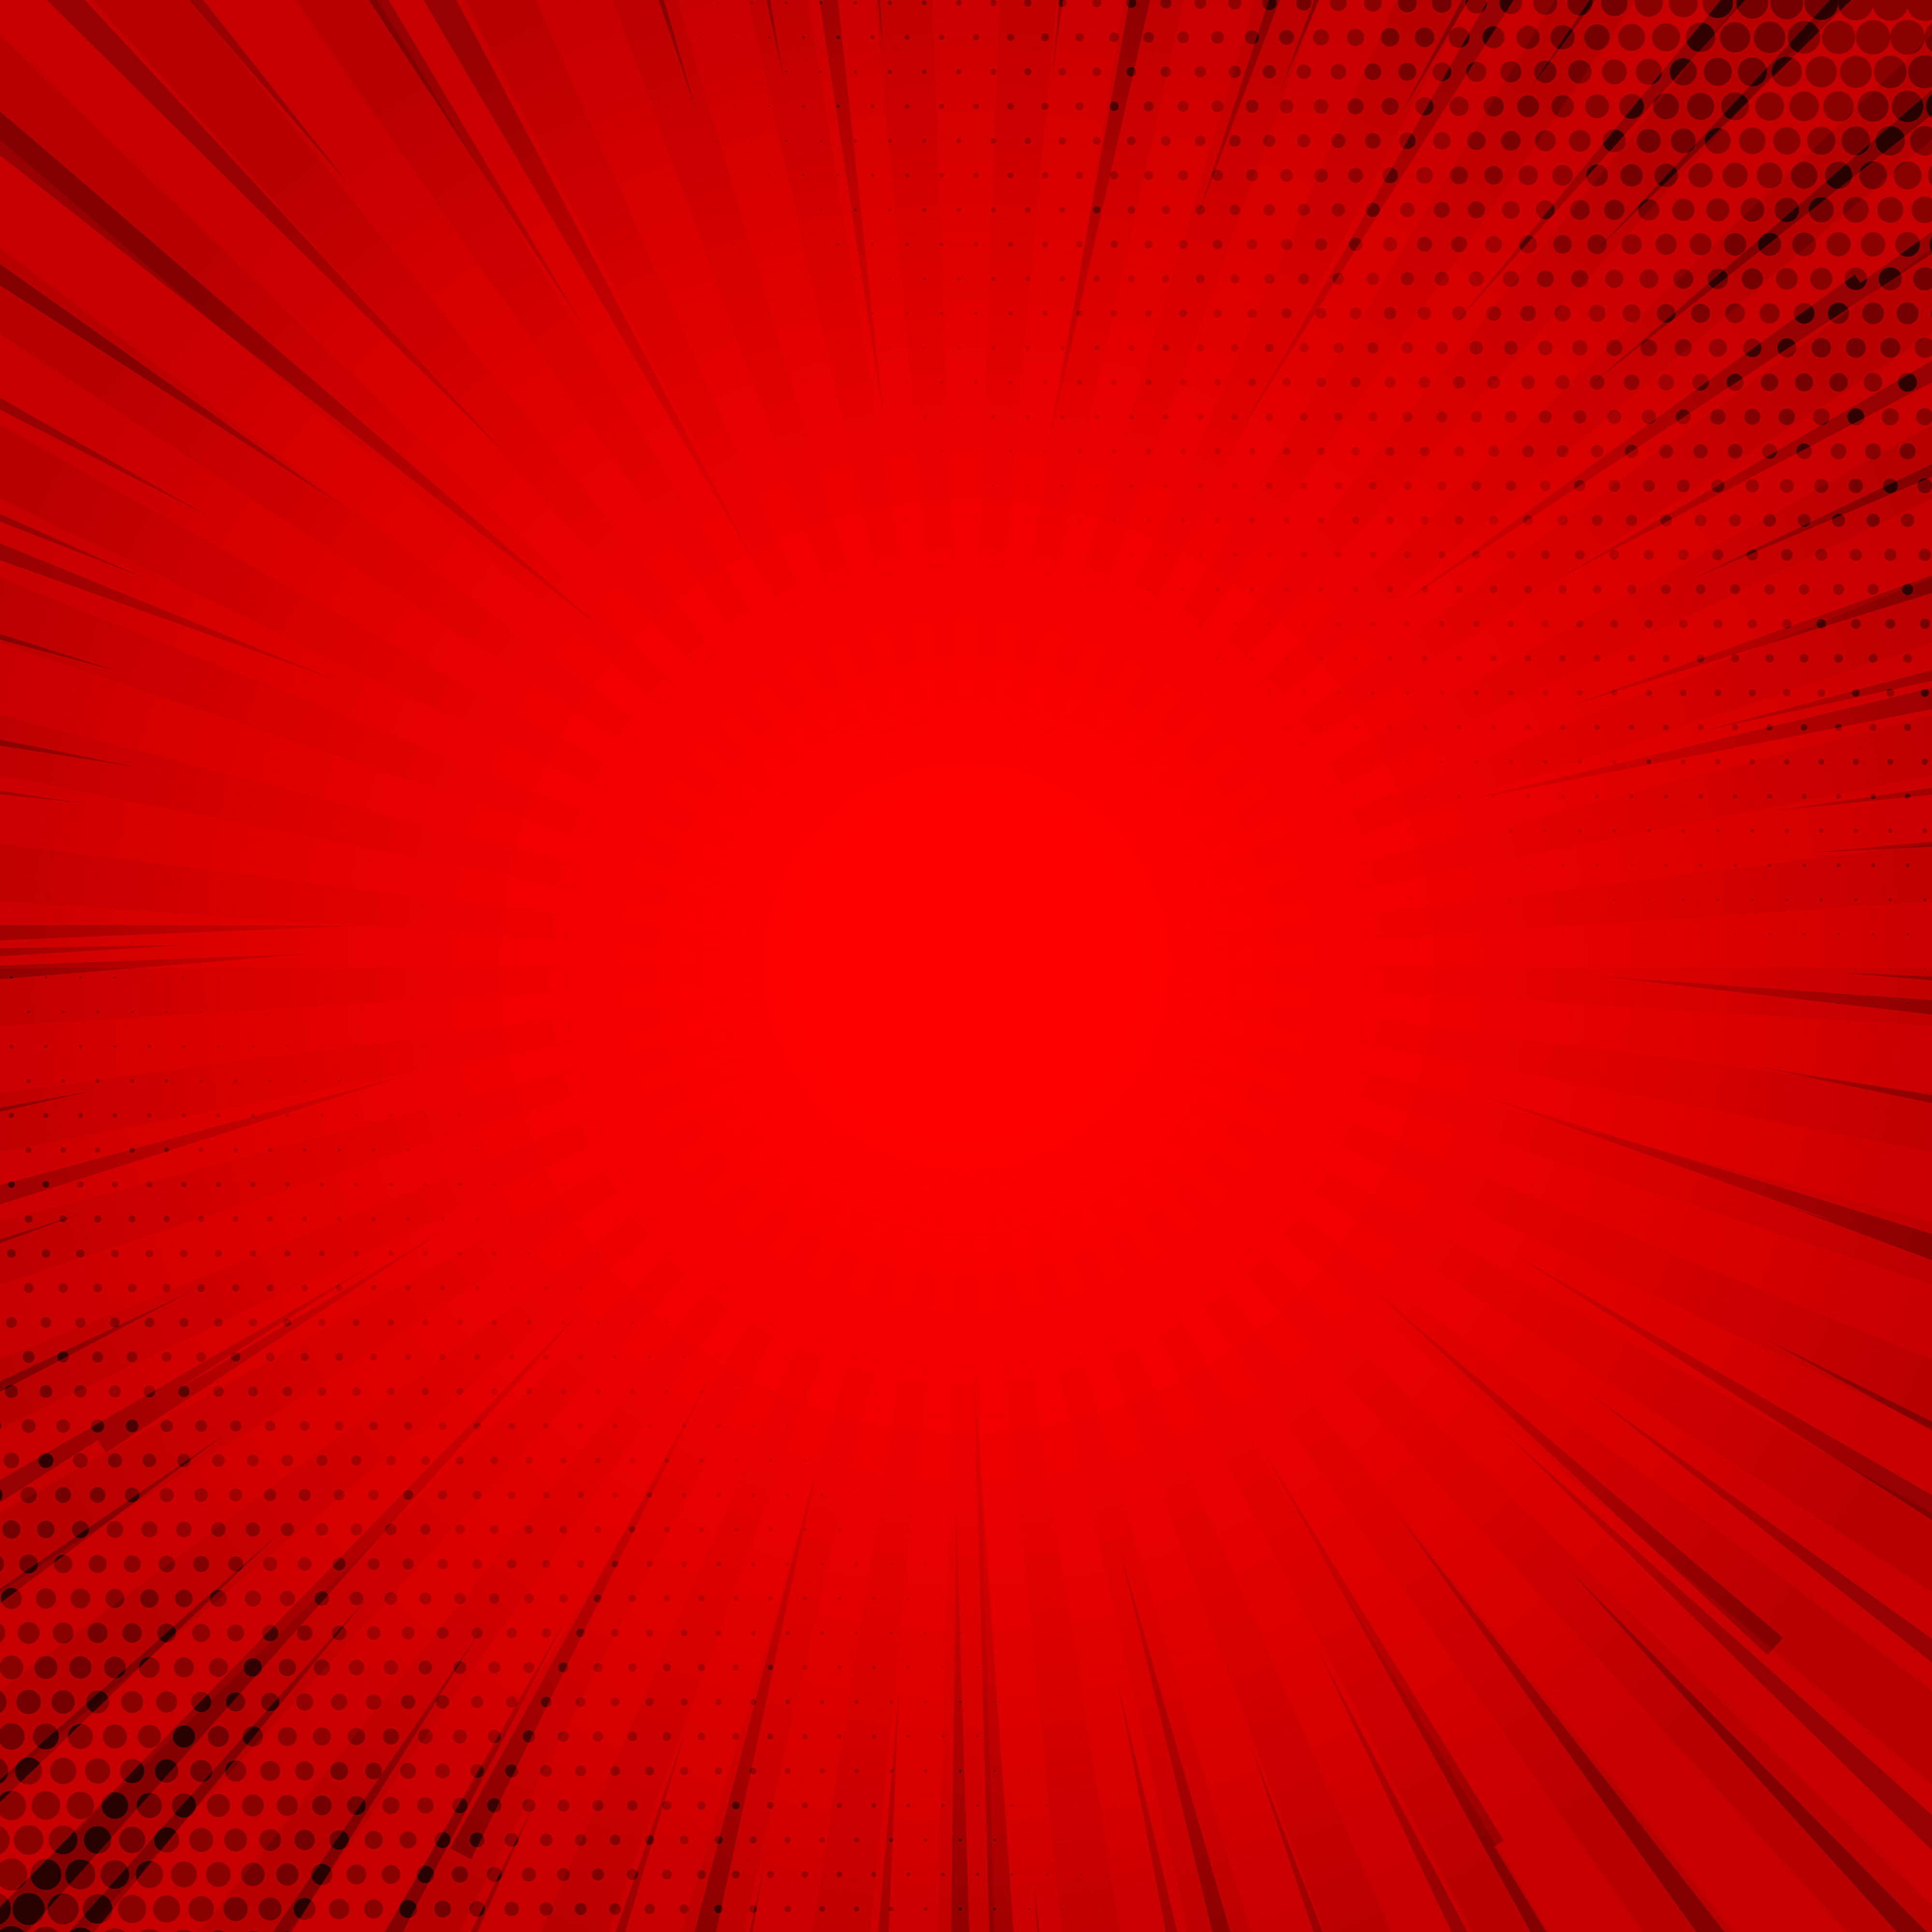 retro red comic background halftone with rays download free vector